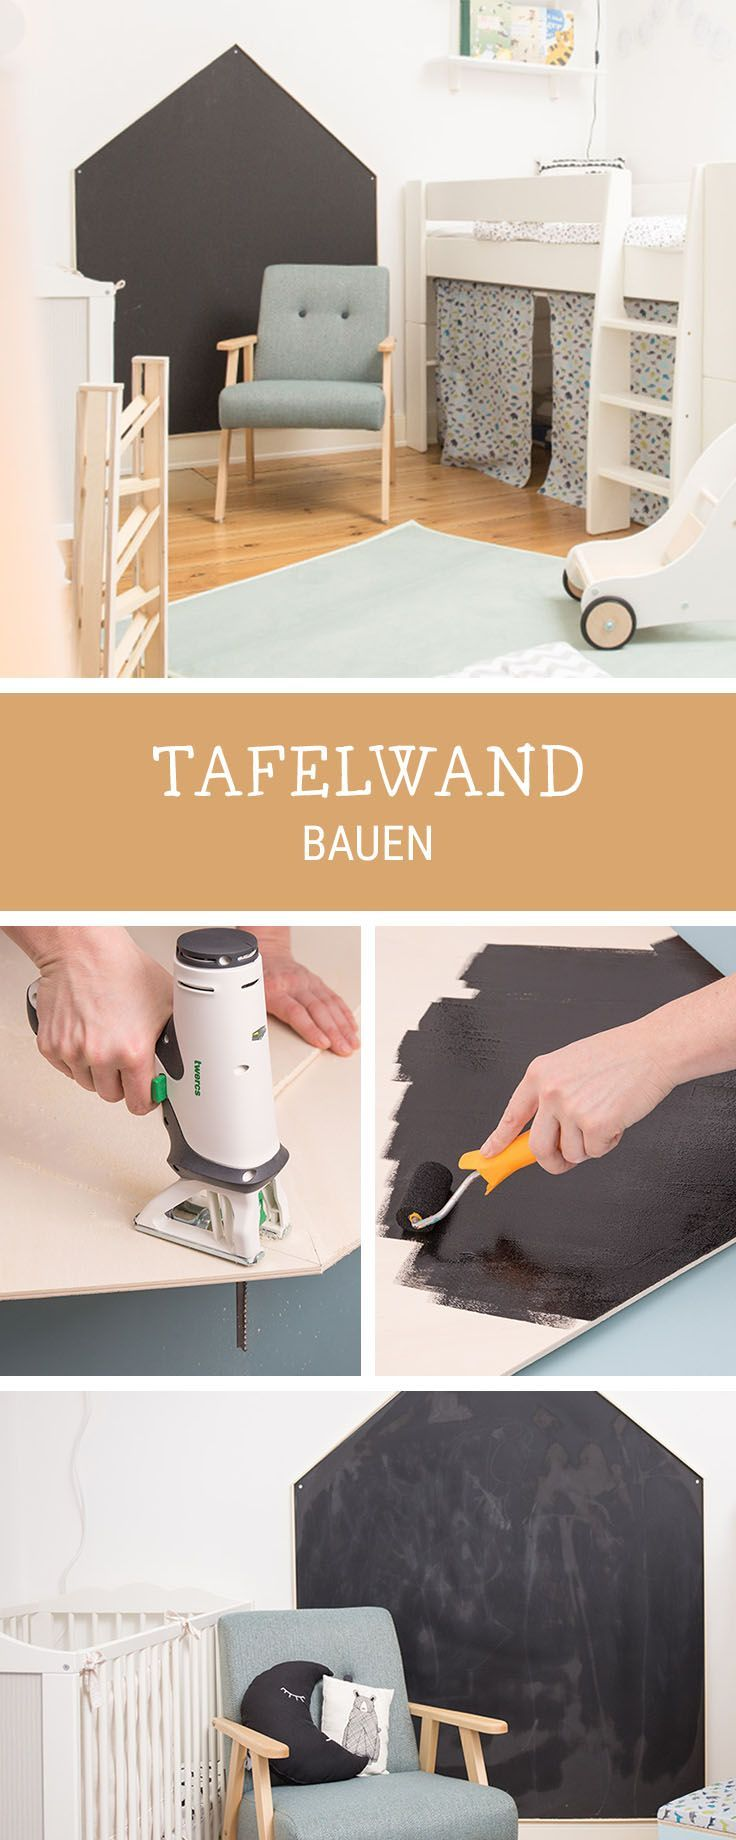 diy anleitung tafelwand in hausform f r das kinderzimmer. Black Bedroom Furniture Sets. Home Design Ideas